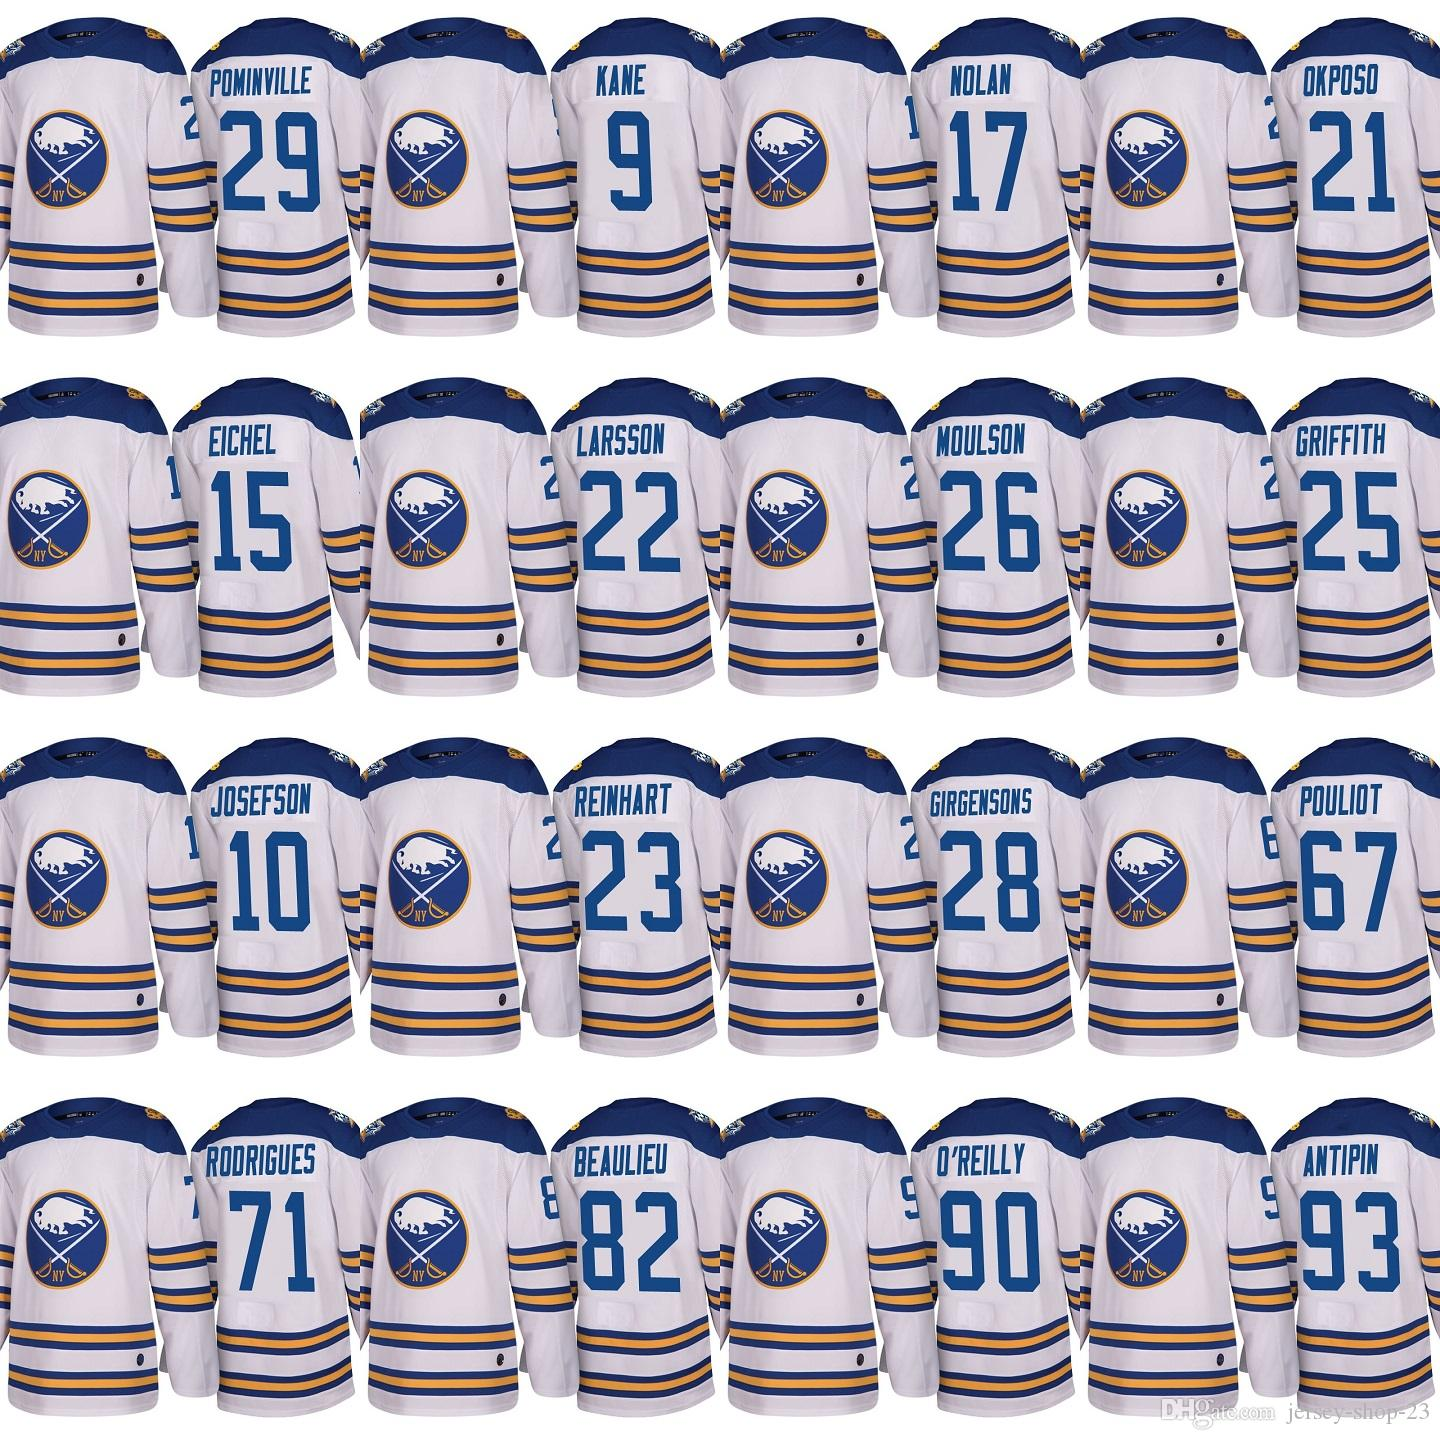 7d2c7275126 2019 White 2018 Winter Classic Buffalo Sabres 10 Jacob Josefson 21 Kyle  Okposo 28 Zemgus Girgensons 93 Victor Antipin Custom Hockey Jerseys From  Jersey Shop ...